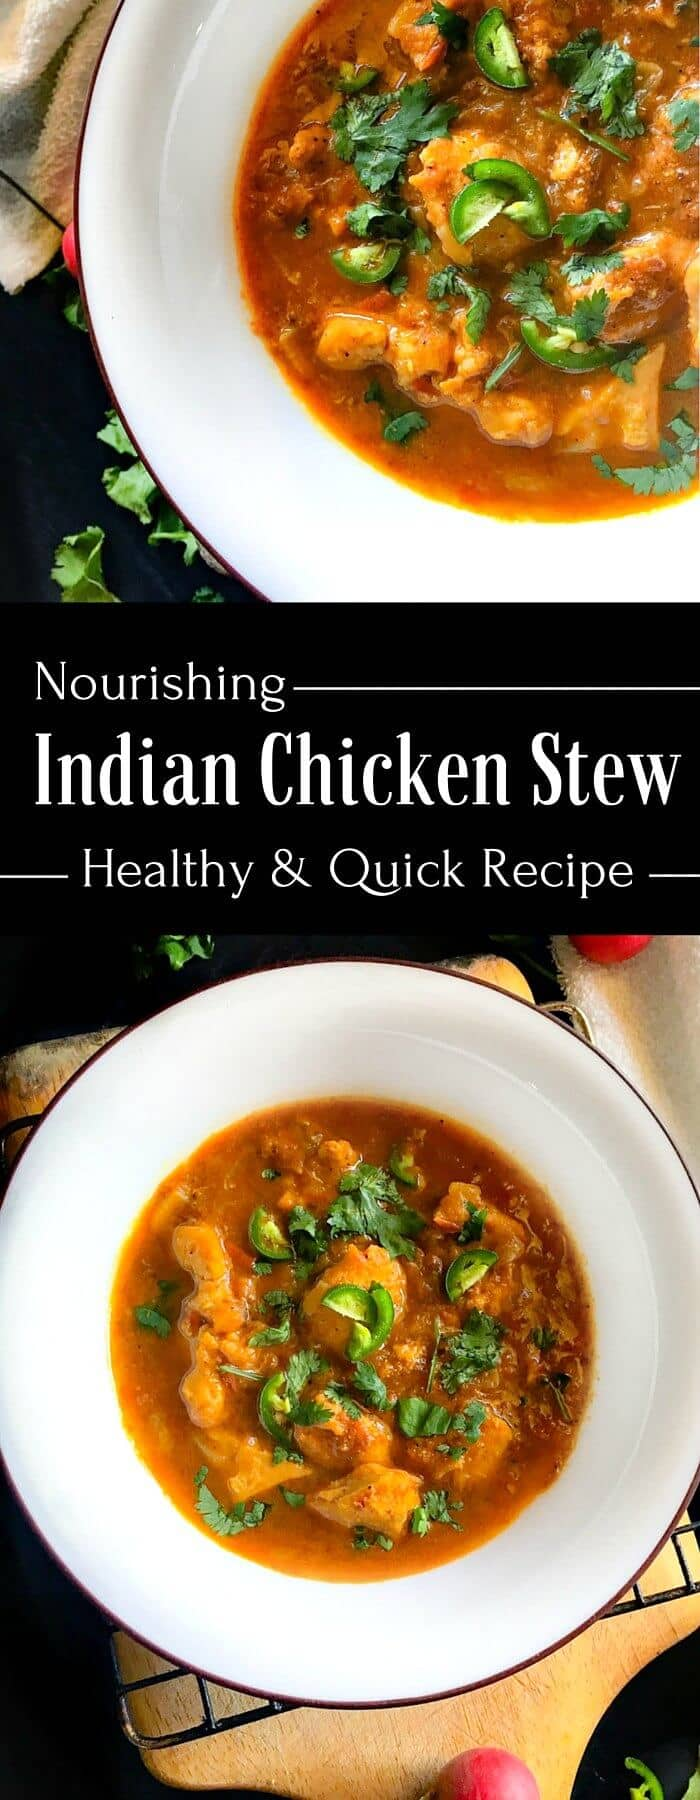 Nourishing Indian Chicken Stew - Healthy and Quick Recipe using healing herbs : #chicken #stew #indian #indianfood #chickenrecipe